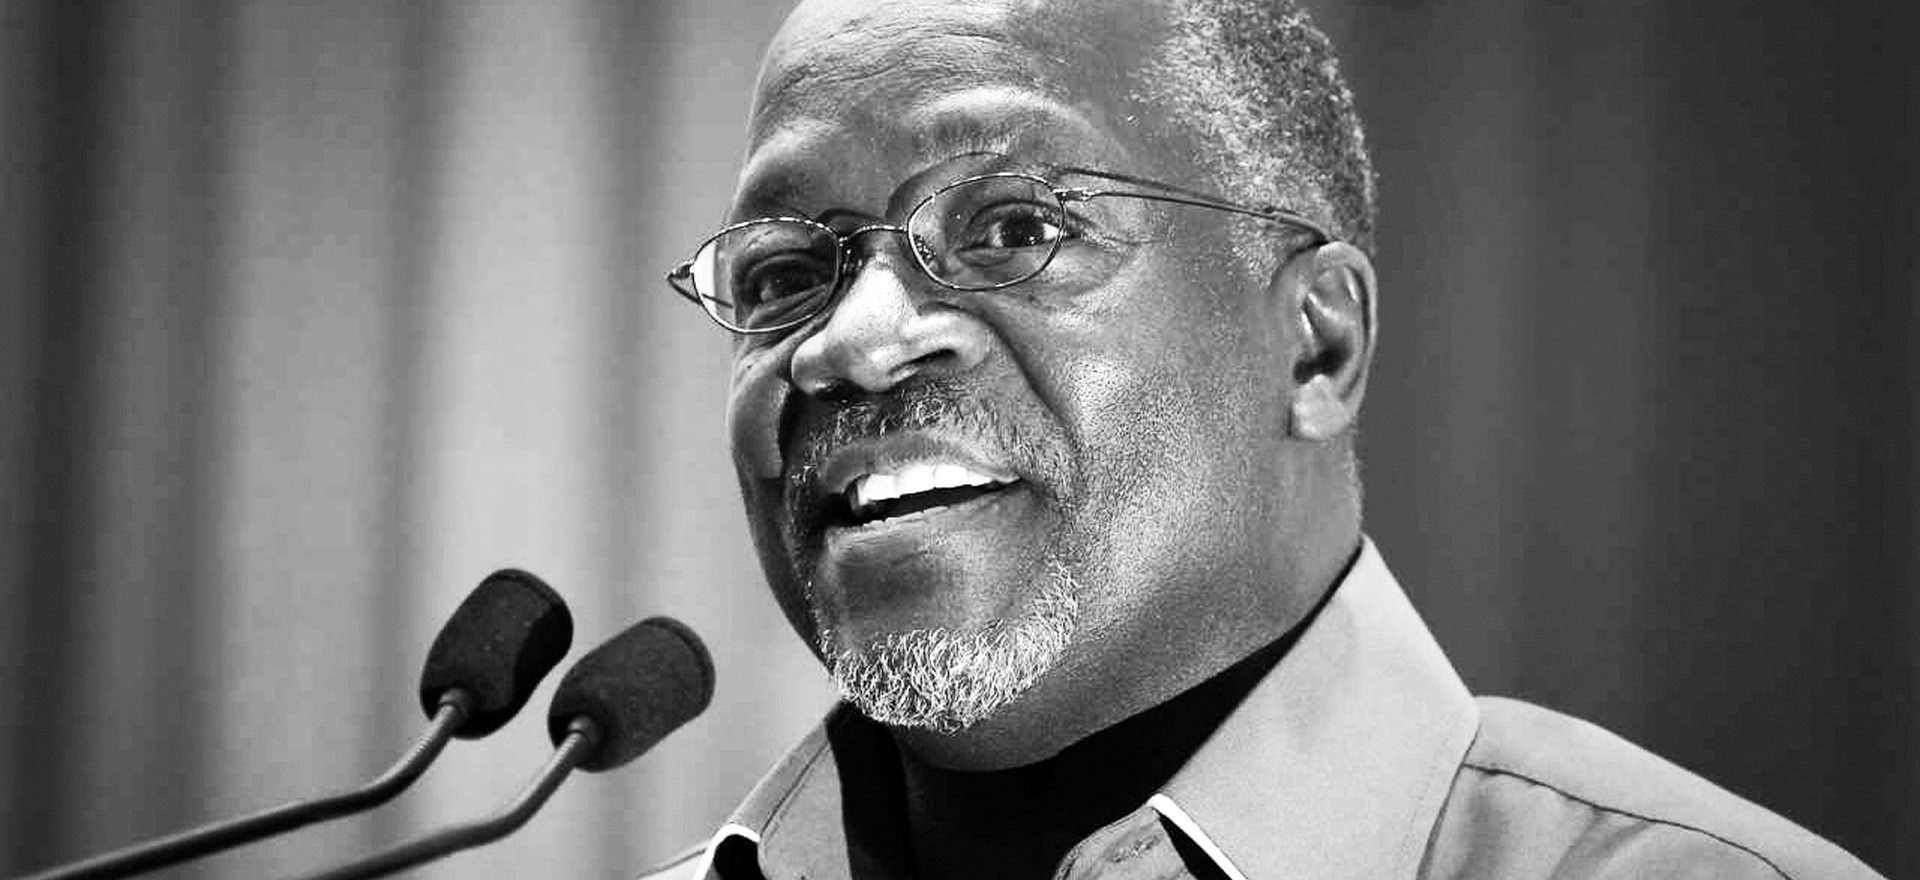 President of Tanzania and PCR tests